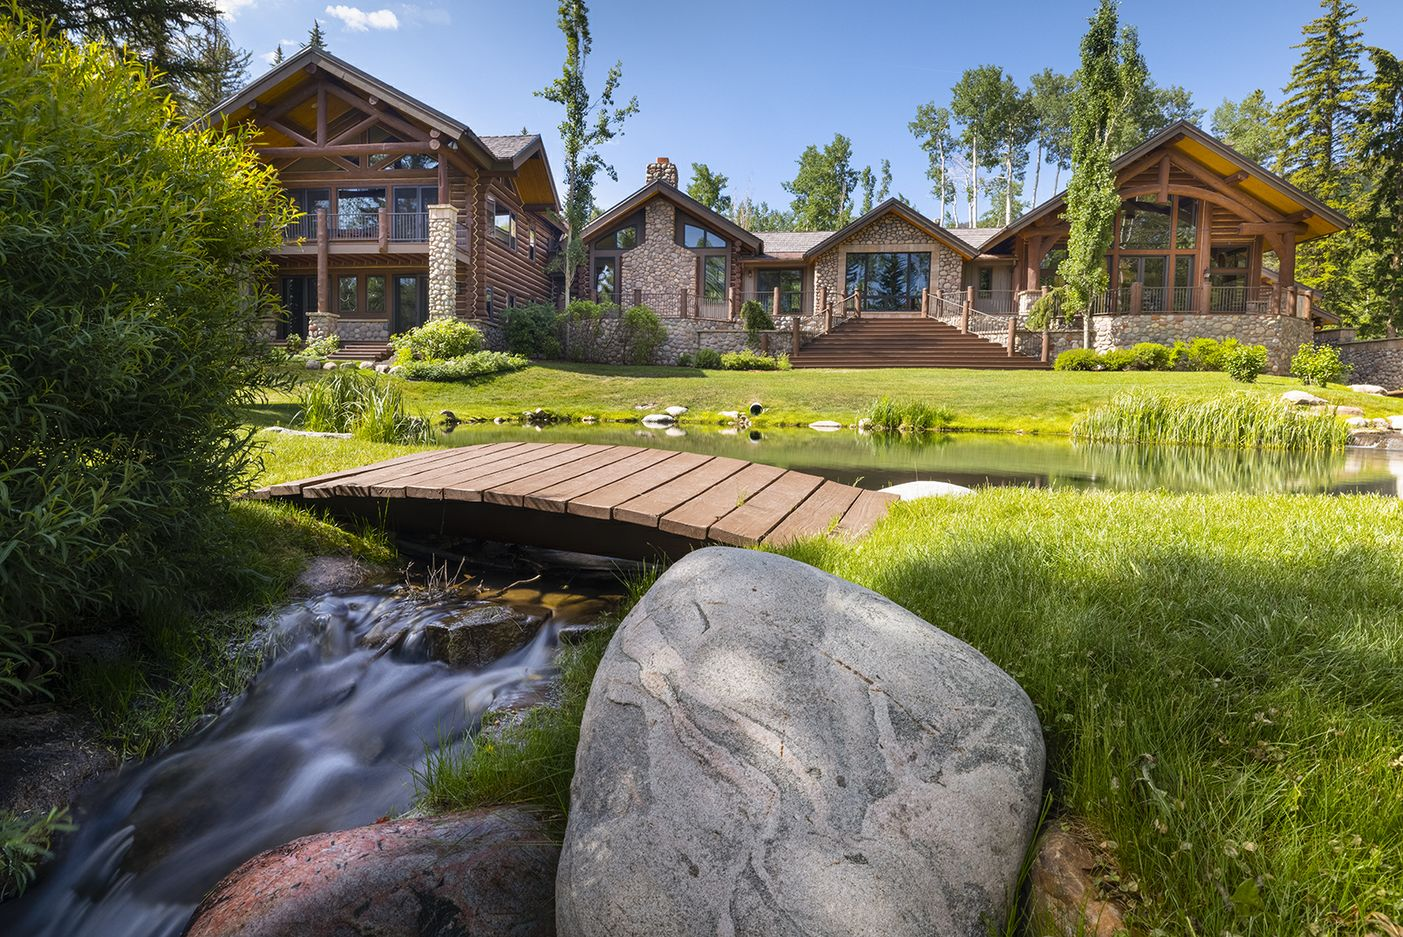 Summer exterior image of luxury mountain home with stream and a manicured lawn